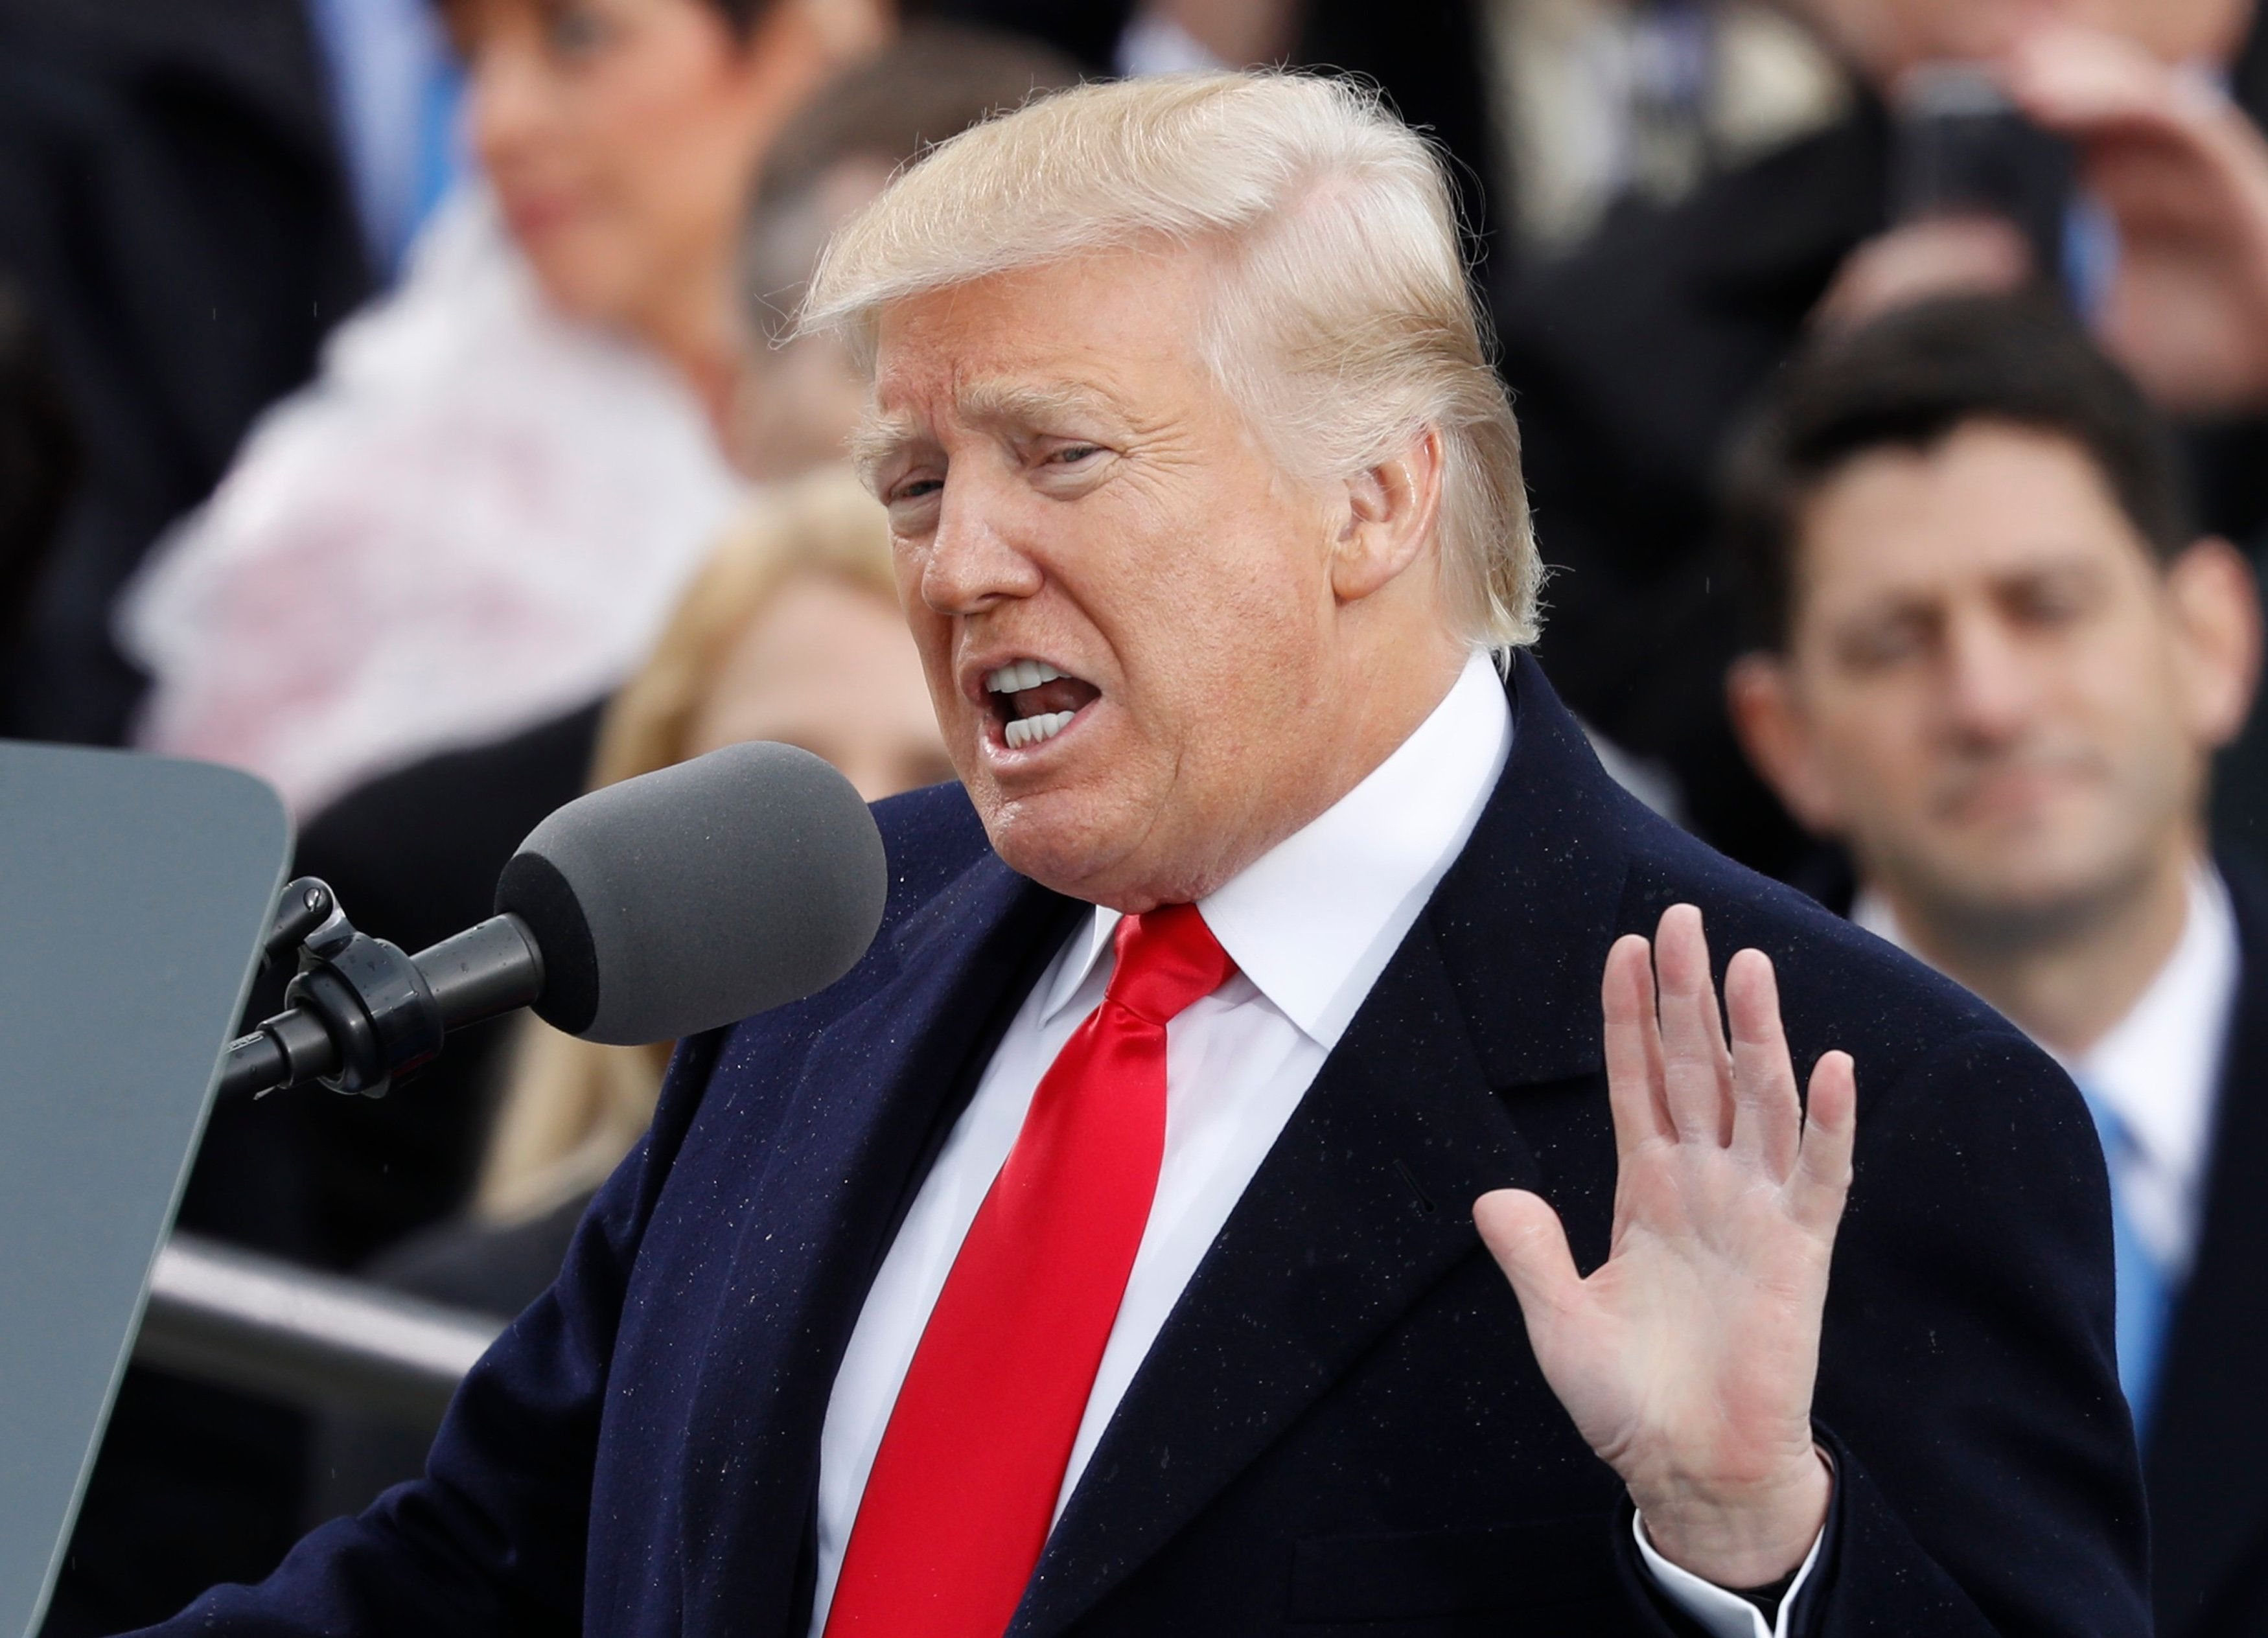 U.S. President Donald Trump speaks after being sworn in as the 45th president of the United States on the West front of the U.S. Capitol in Washington, U.S., January 20, 2017.  REUTERS/Lucy Nicholson